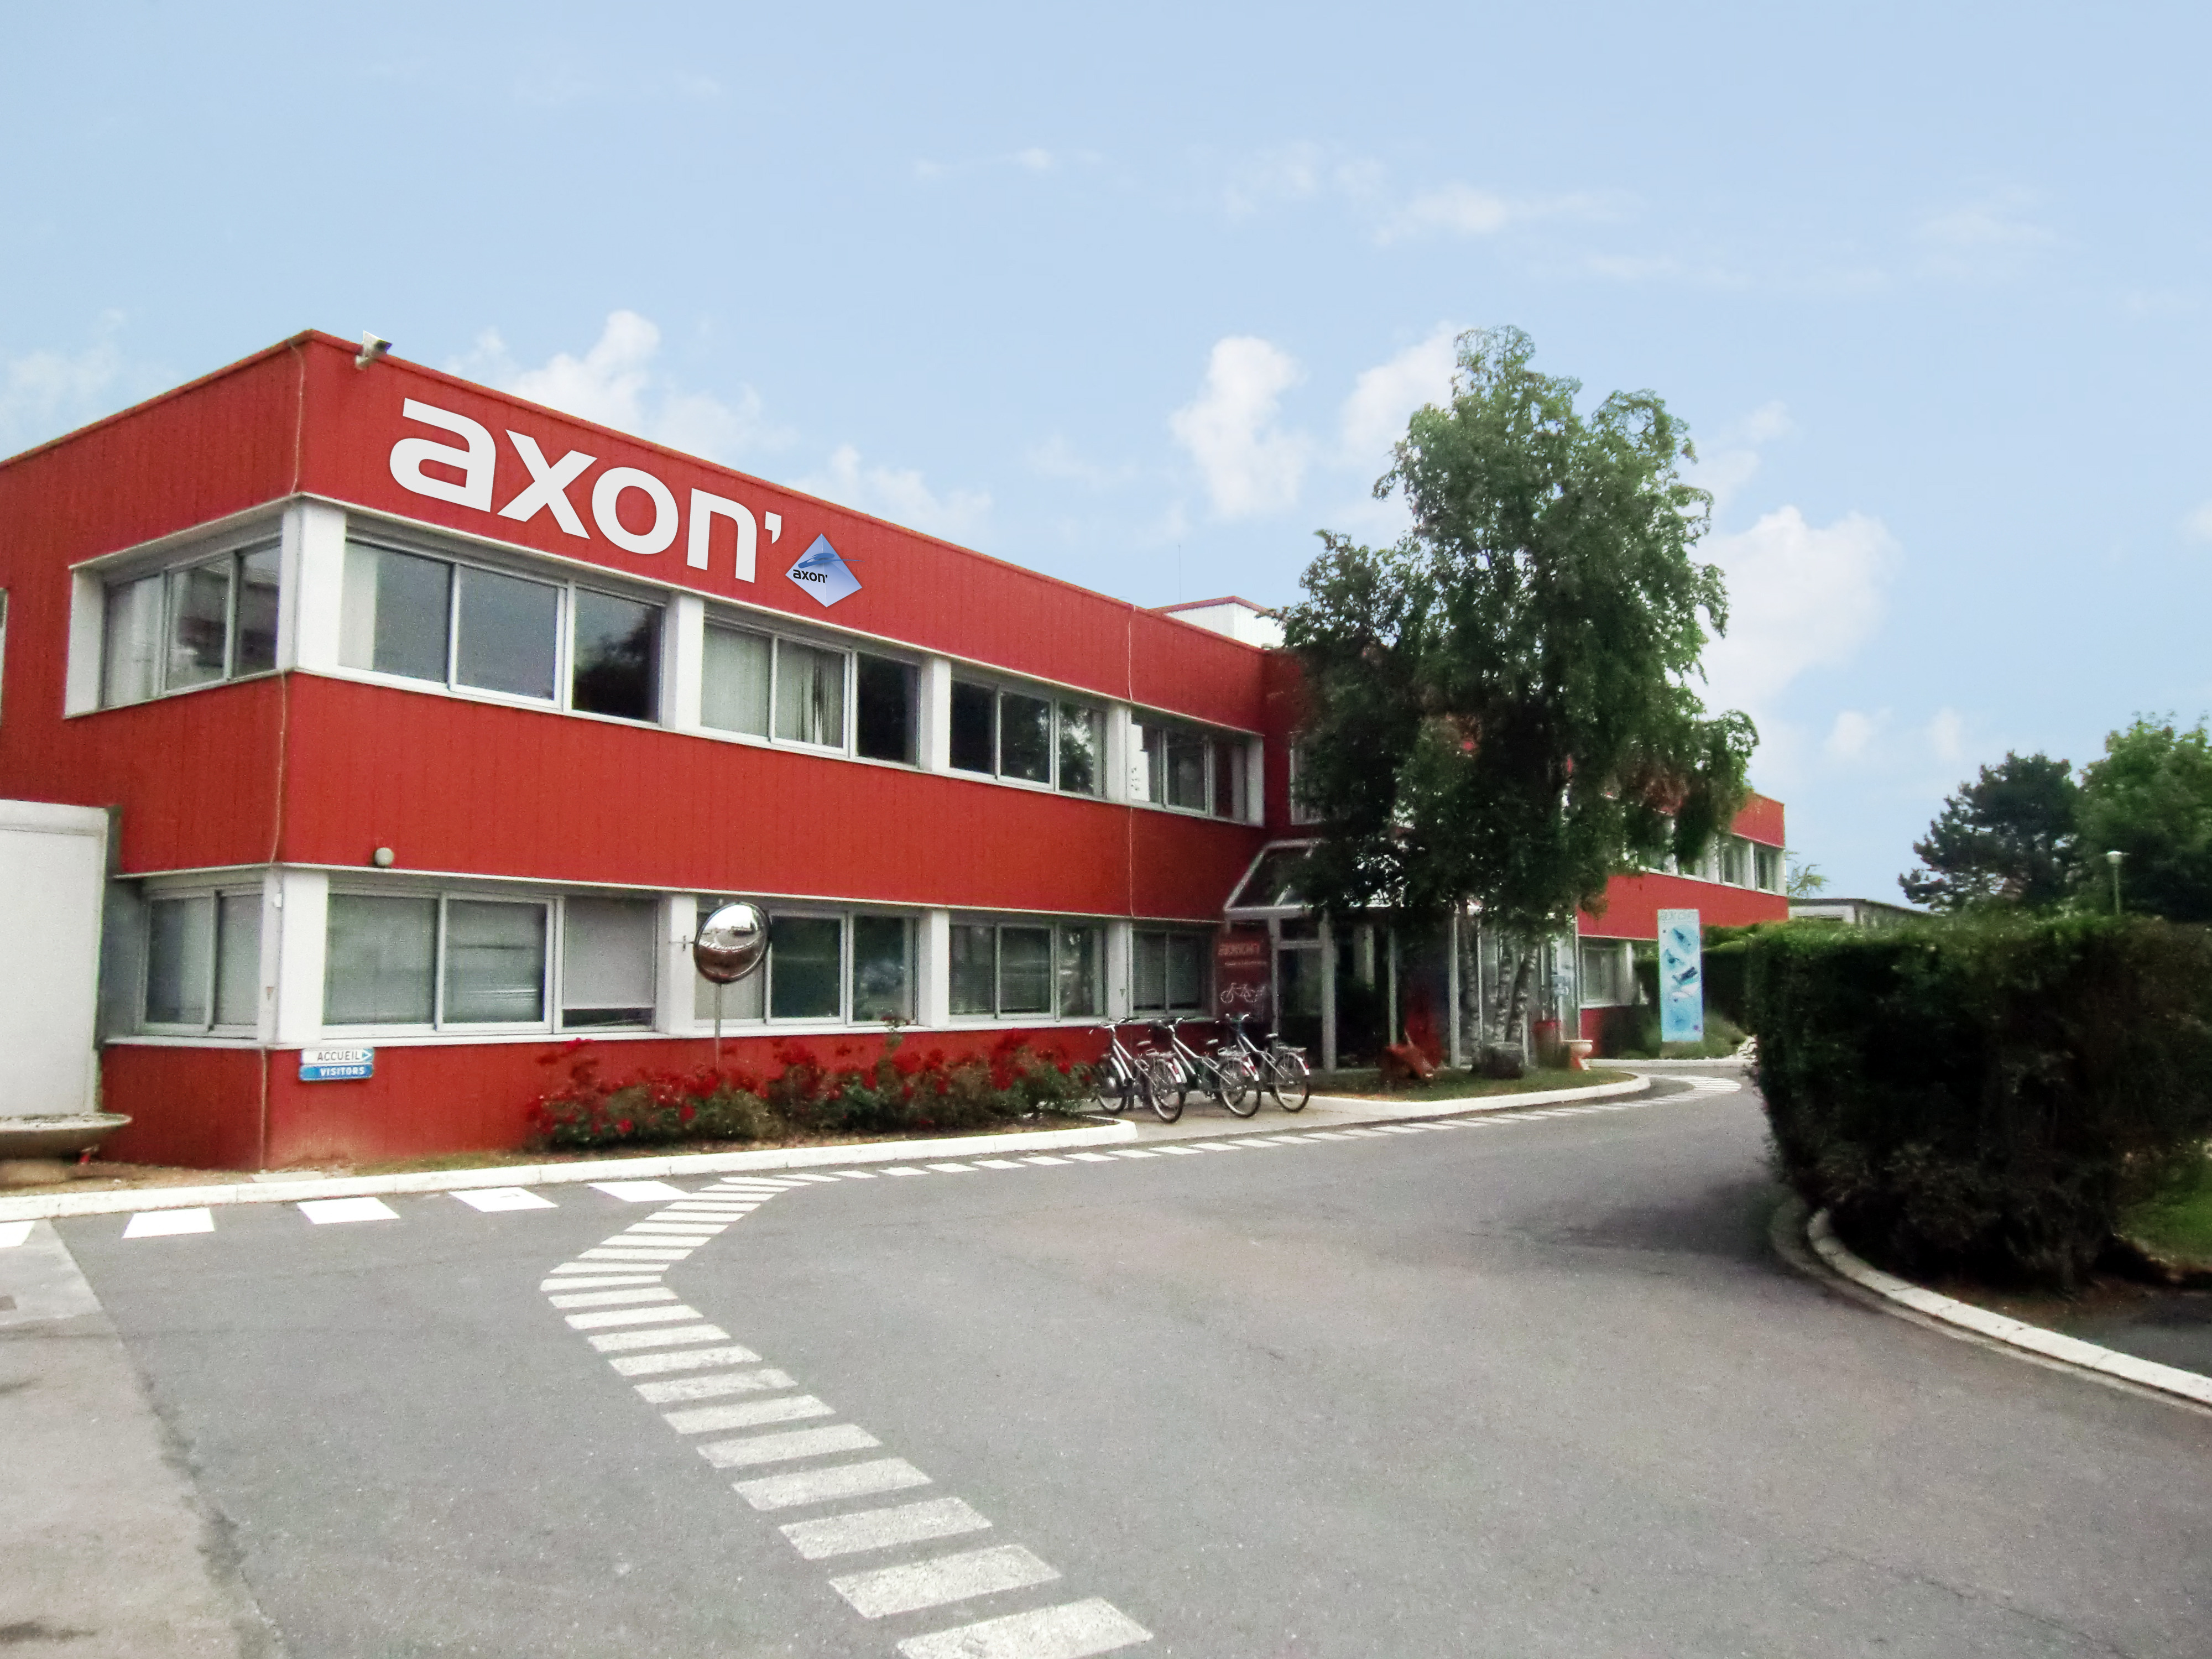 Axon'Cable equips itself with Steriall®